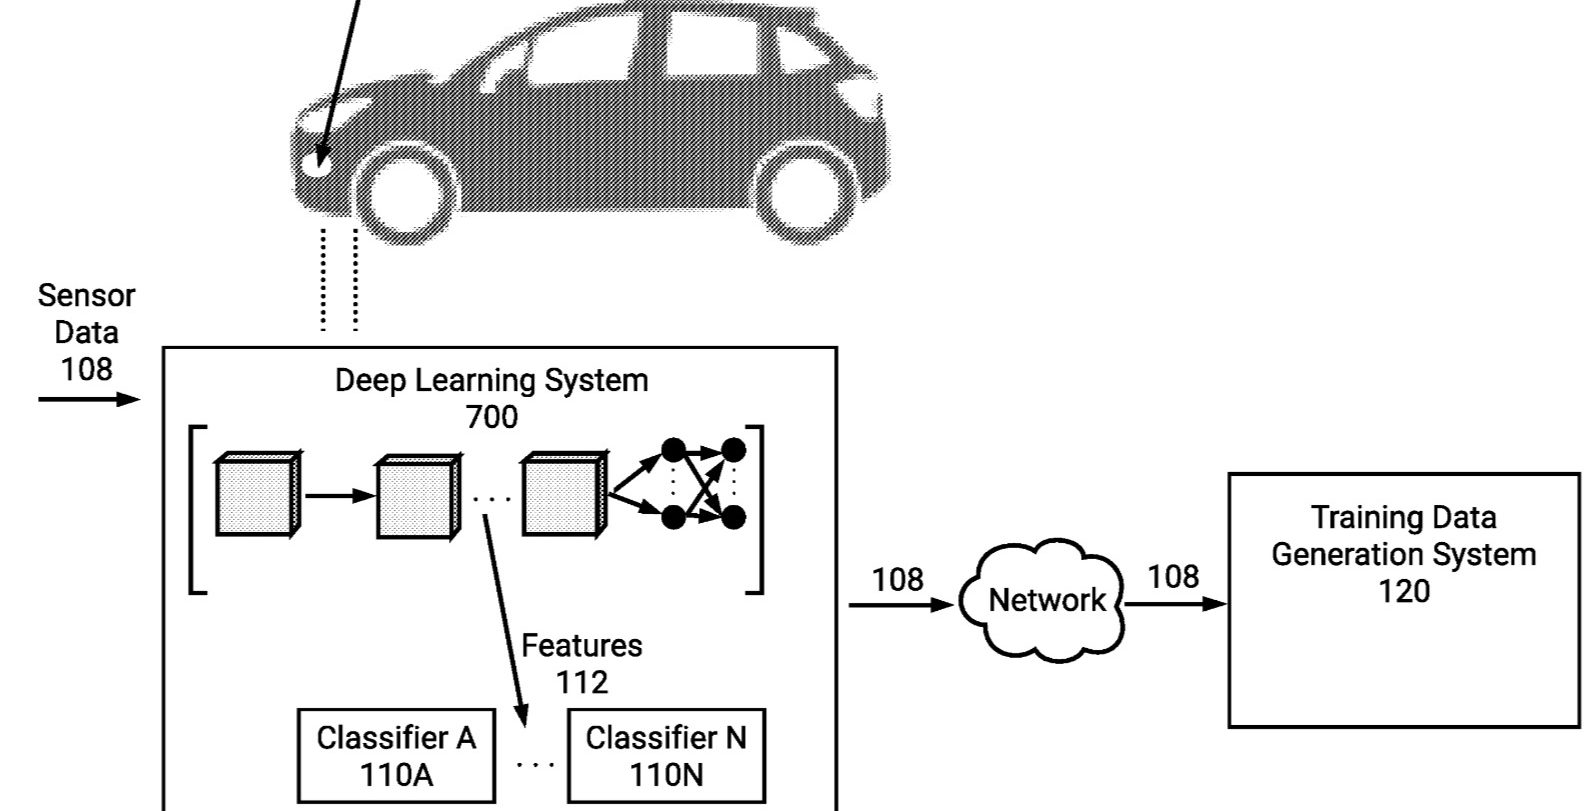 Tesla files patent for sourcing self-driving training data ...